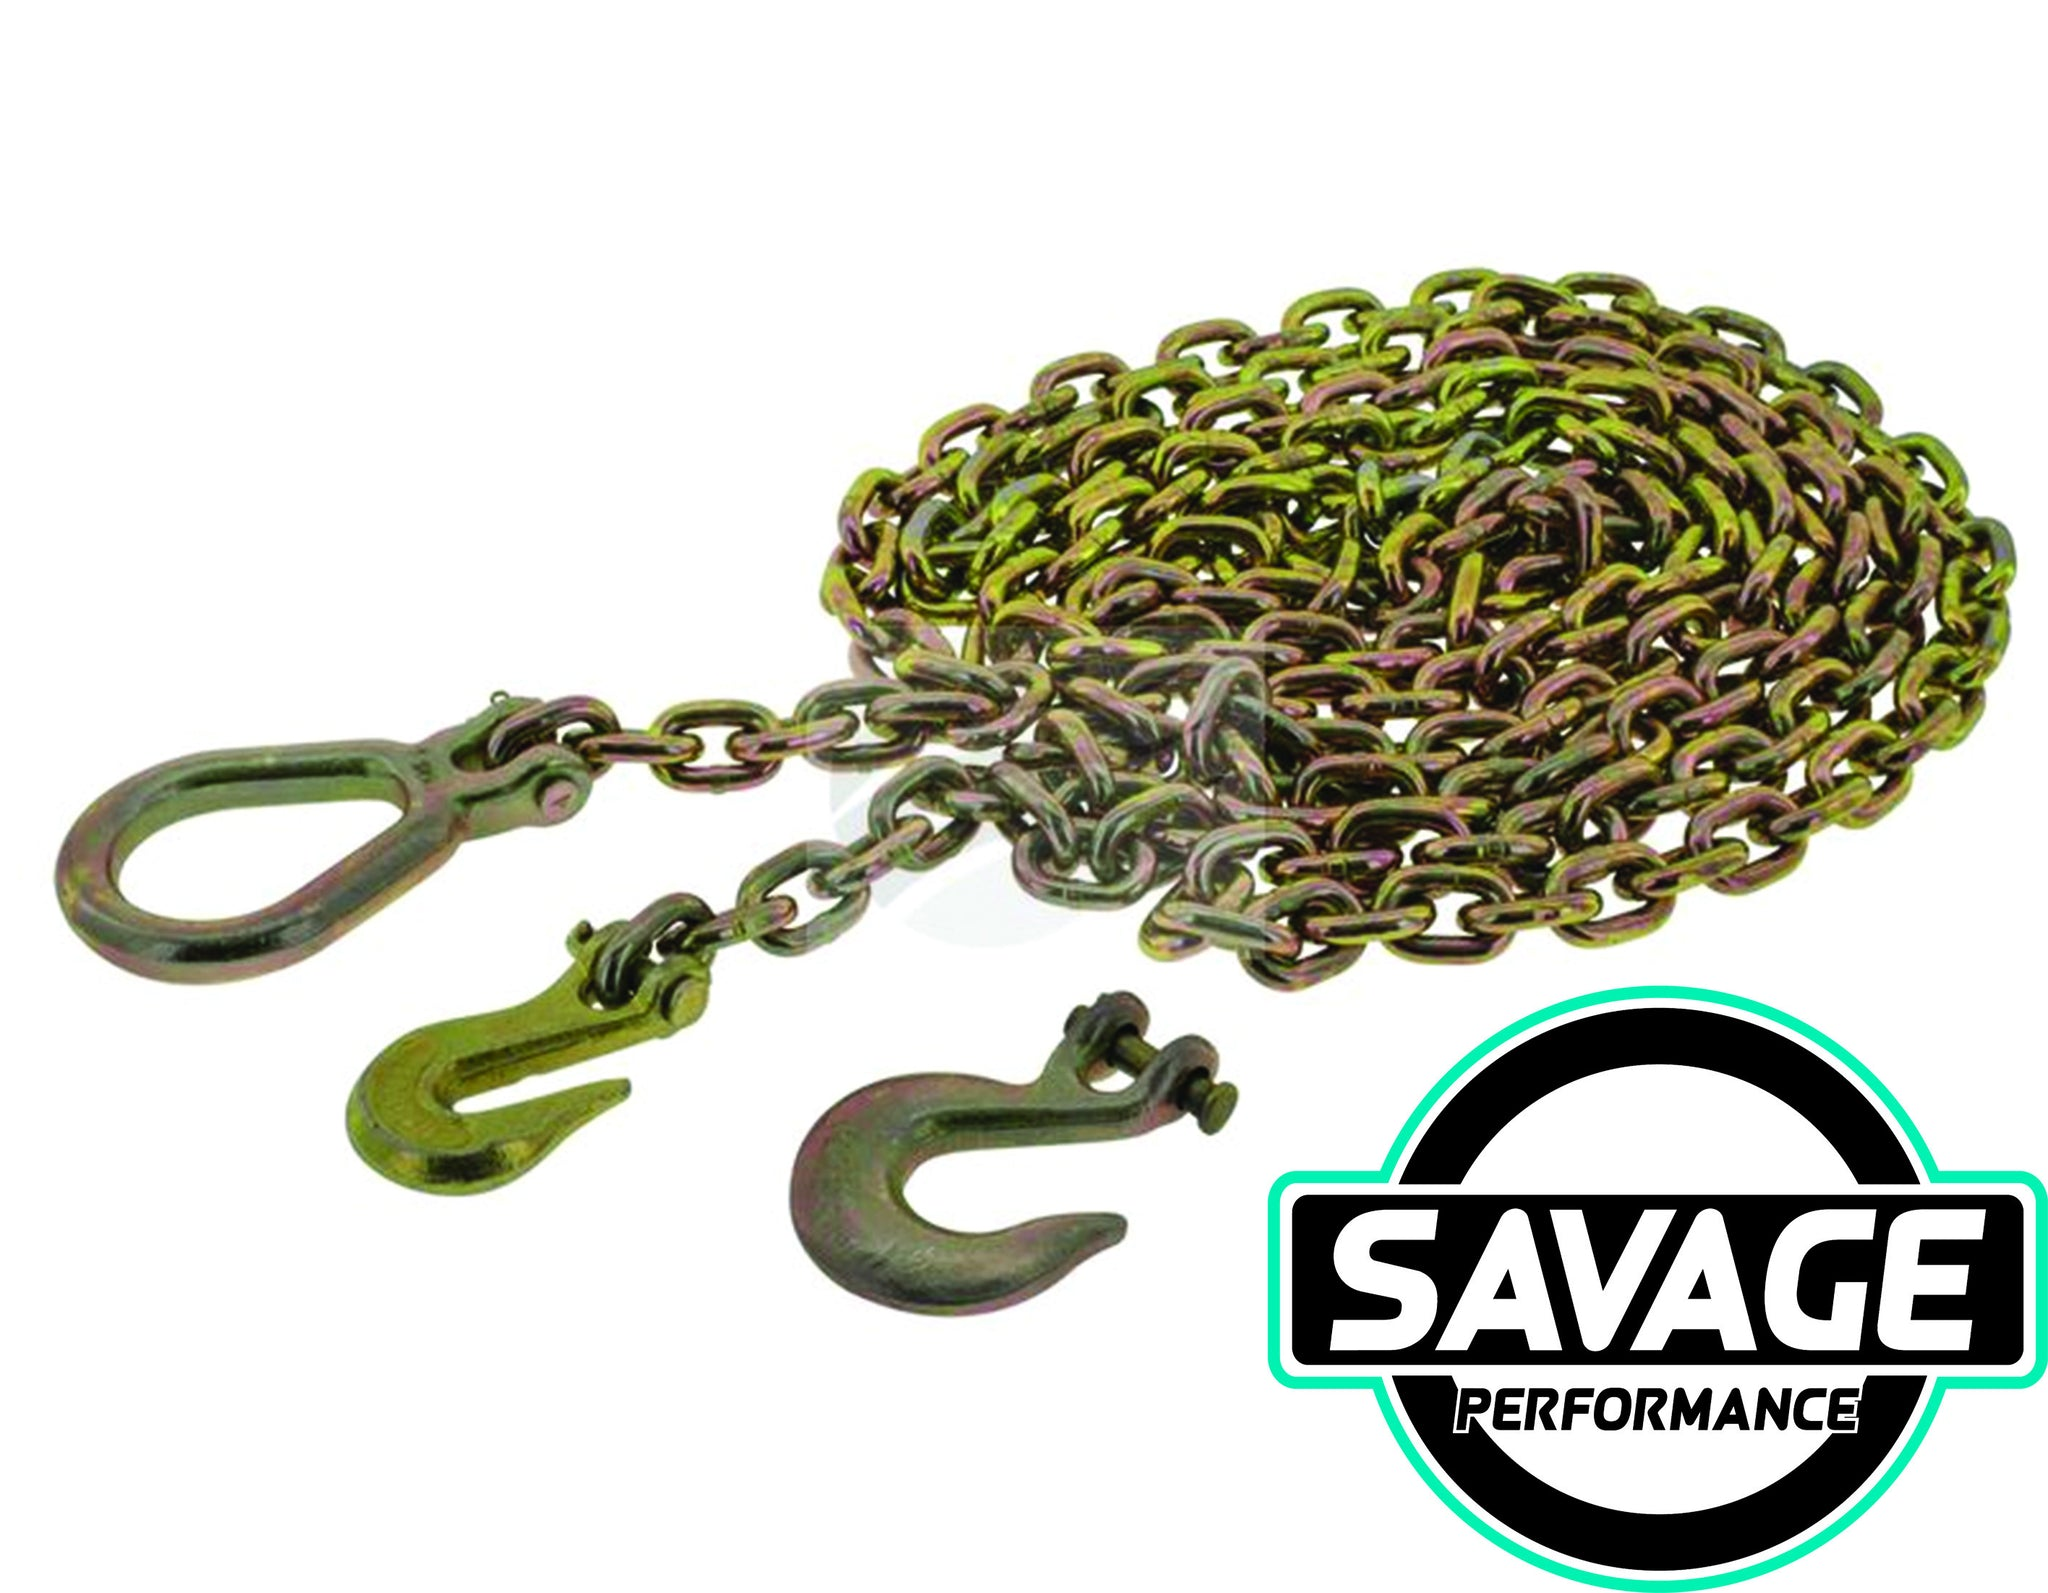 HULK 4x4 Drag Chain 8mm X 5m 8000KG with 3 Hooks *Savage Performance*